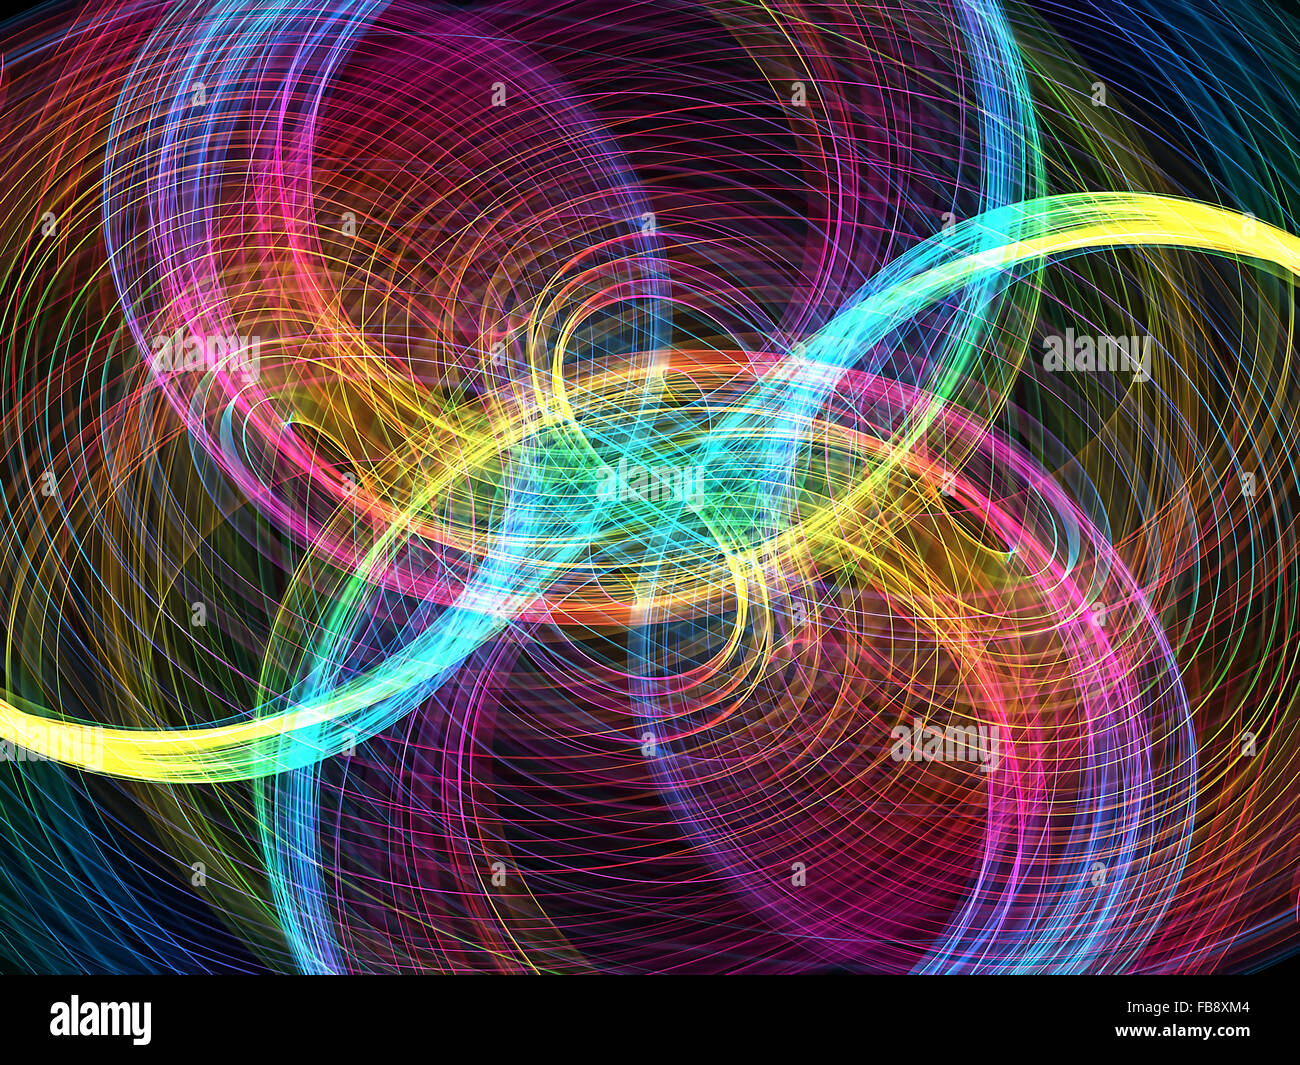 abstract multicolored wavy symmetrical pattern - Stock Image